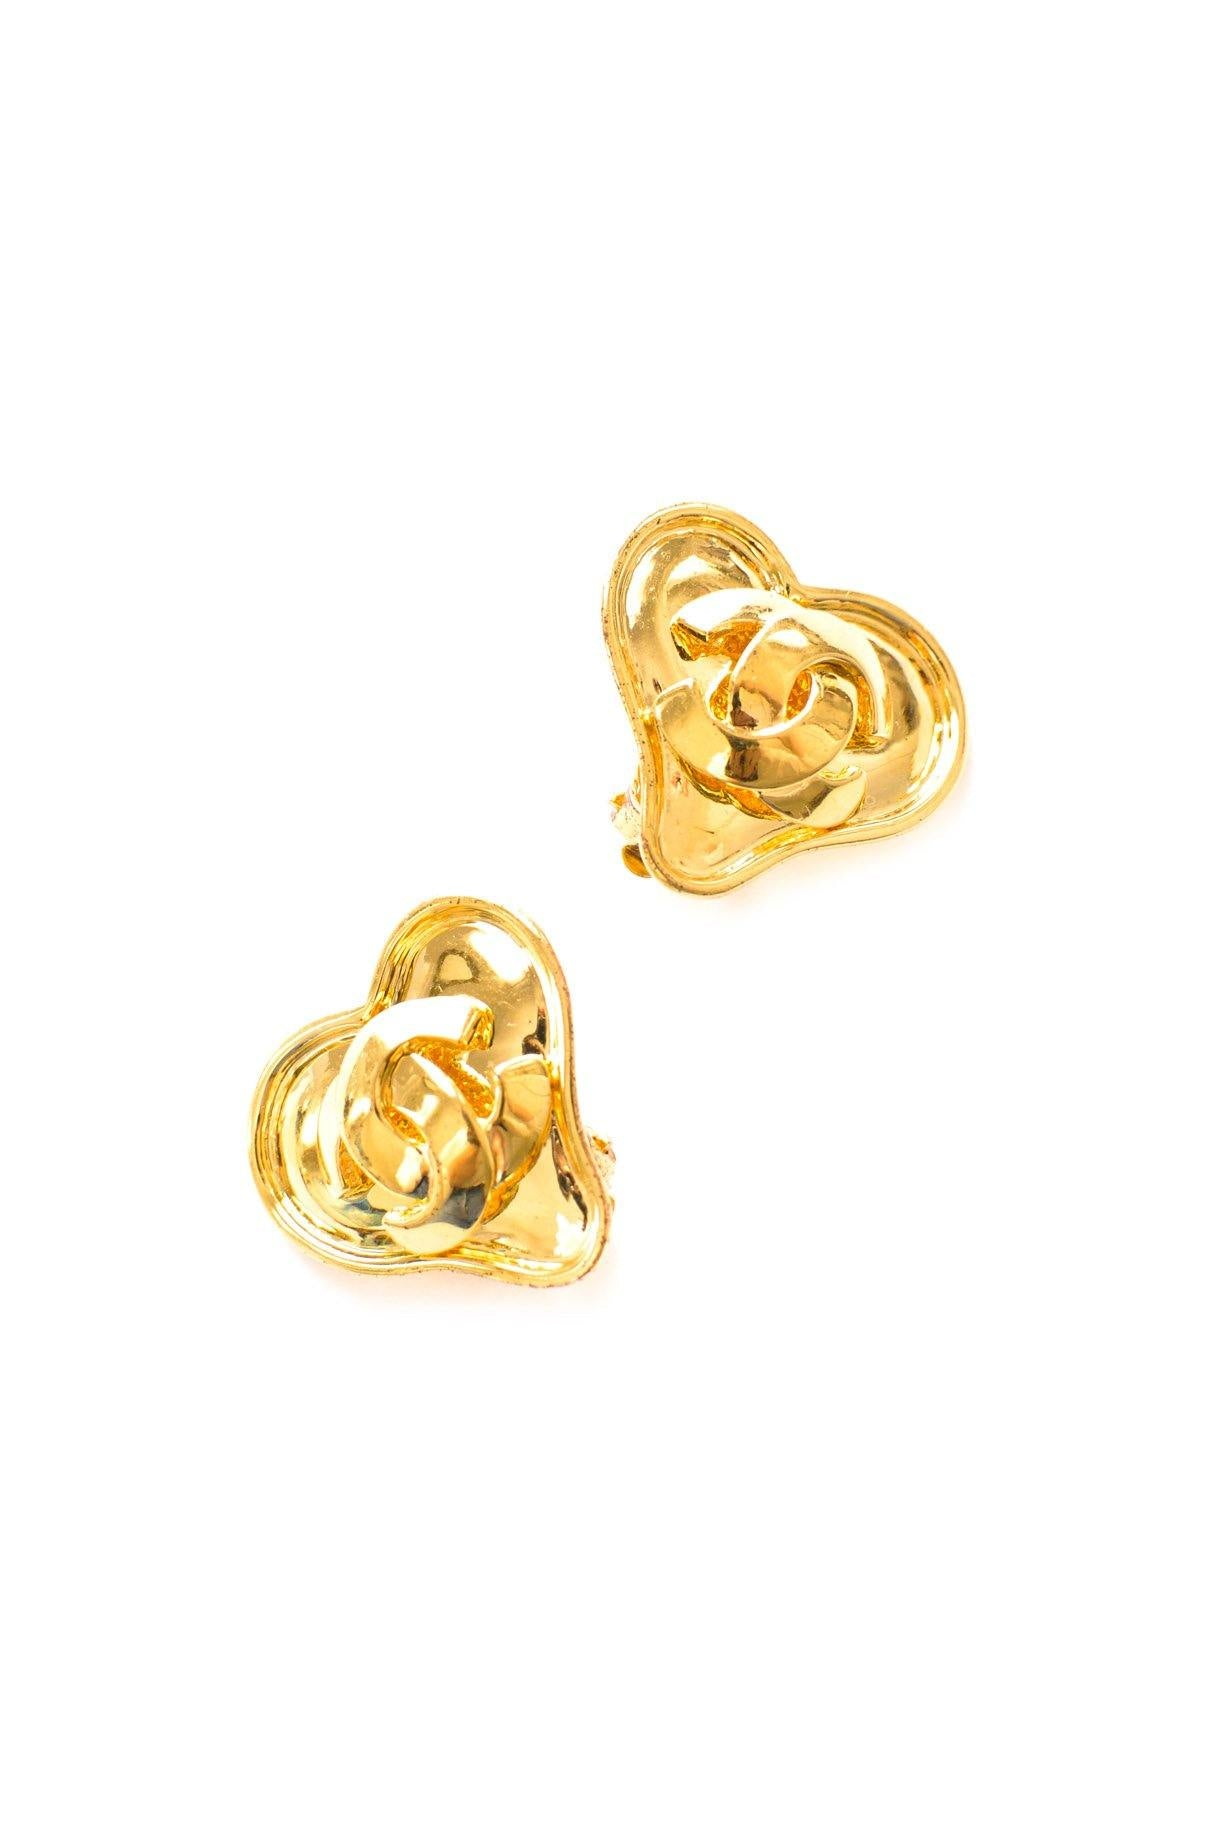 Chanel Puffy Heart Clip-on Earrings